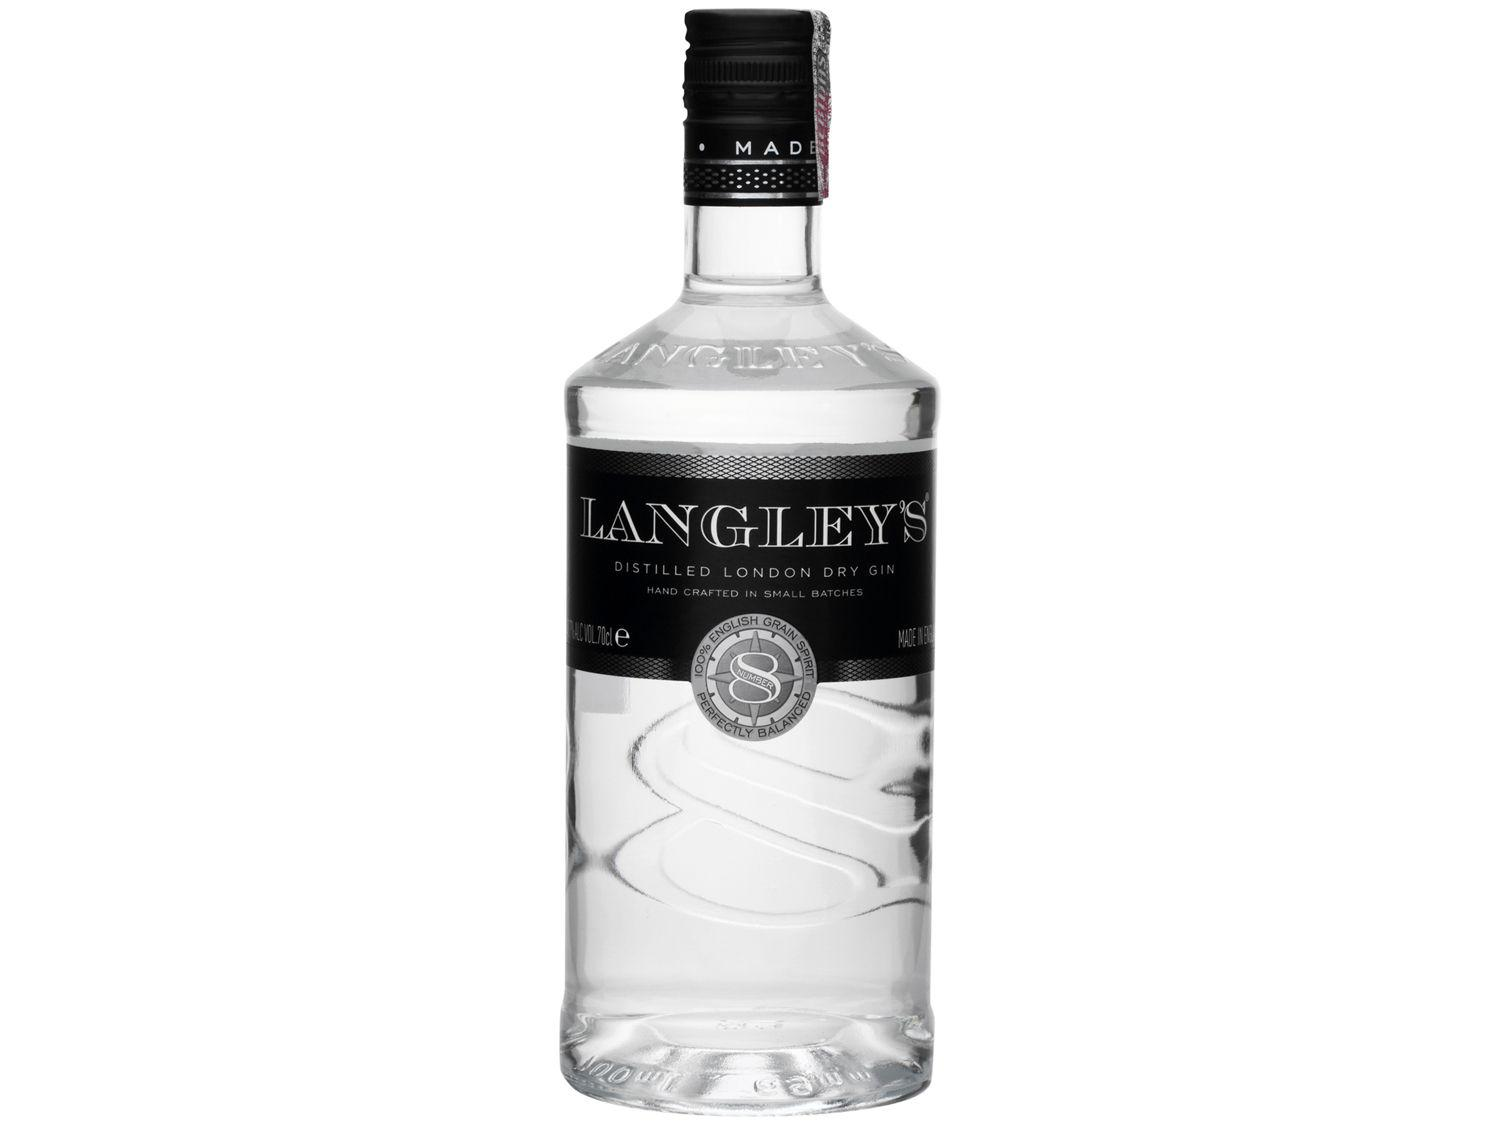 Gin Langleys London Dry Seco Number 8 - 700ml